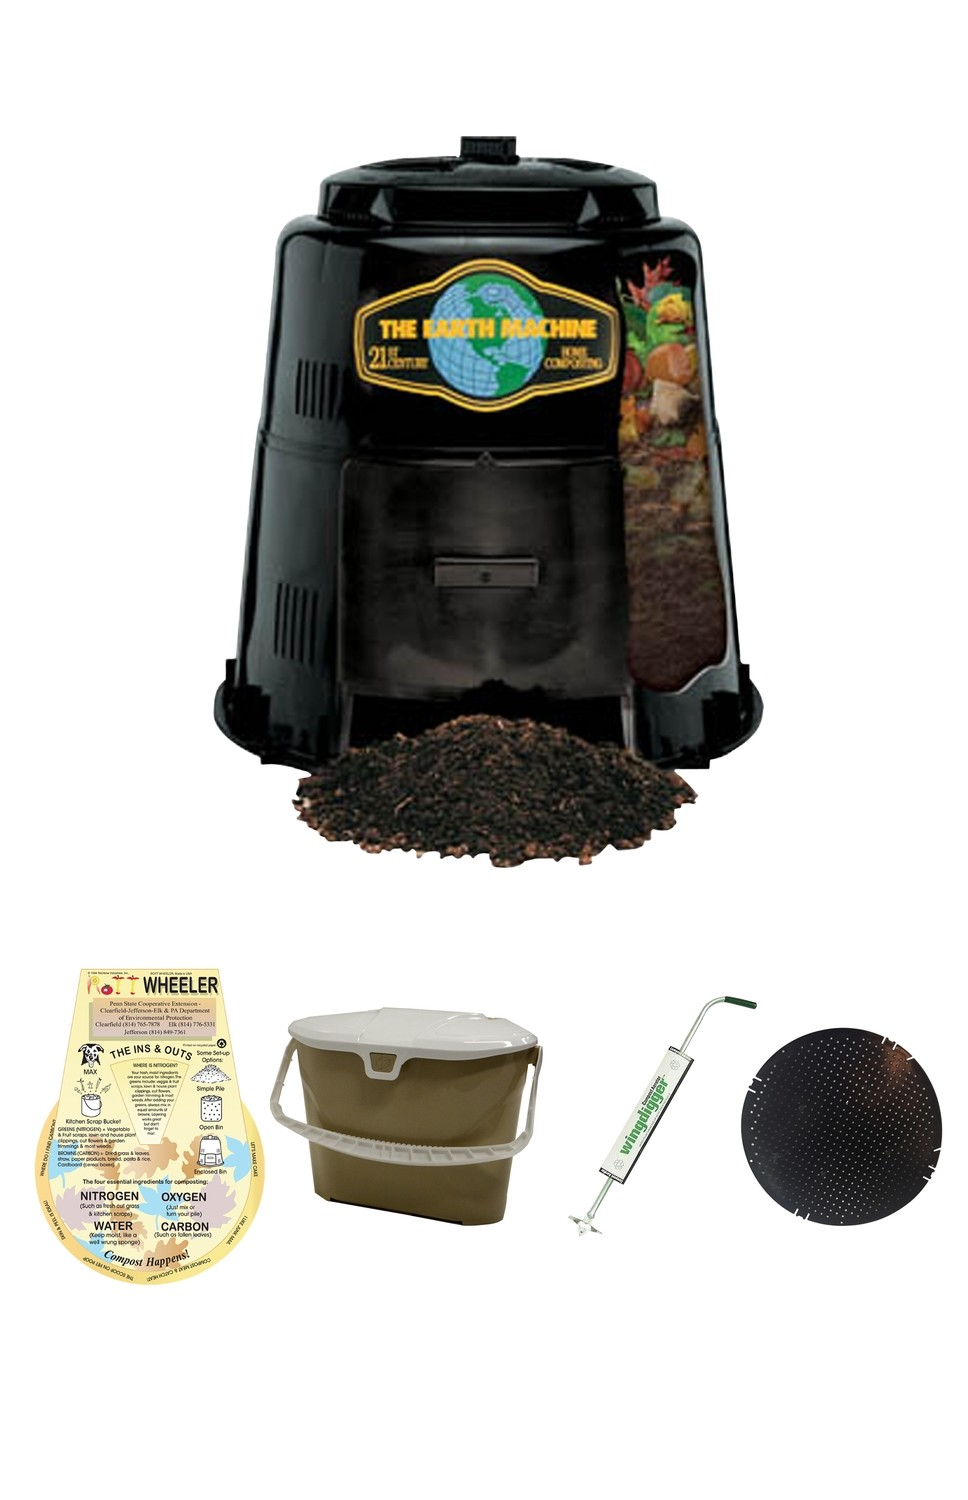 KIT 4: BEST VALUE - This includes The Earth Machine, Rottwheeler, Kitchen Collector, Wingdigger Compost Turner & the Rodent Screen/Base.